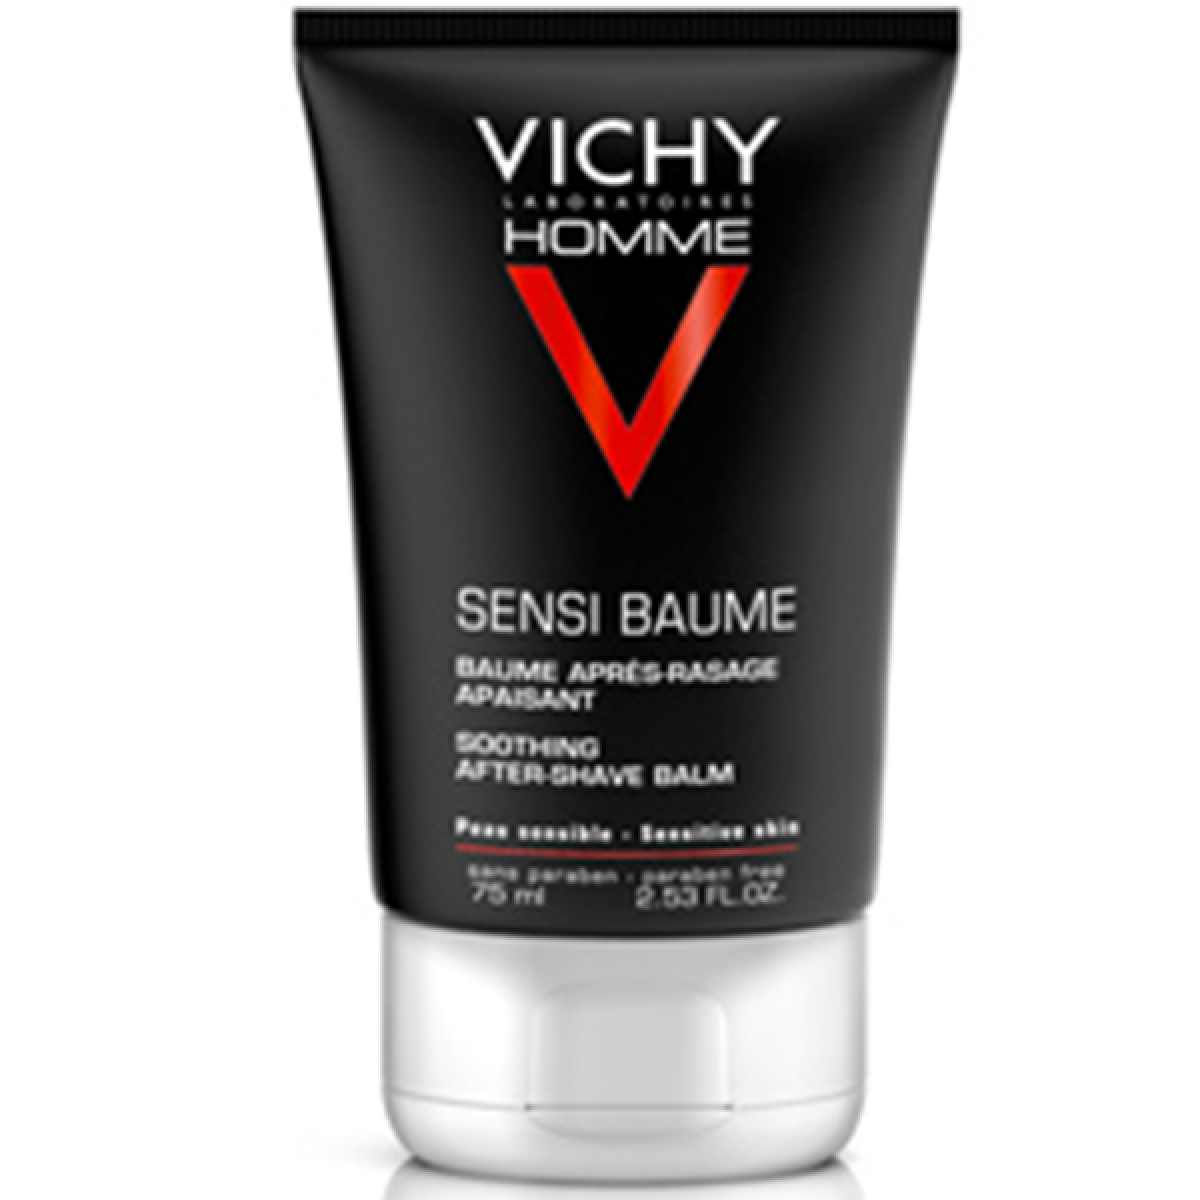 vichy homme sensi baume apr s rasage 75ml parapharmacie pharmarket. Black Bedroom Furniture Sets. Home Design Ideas